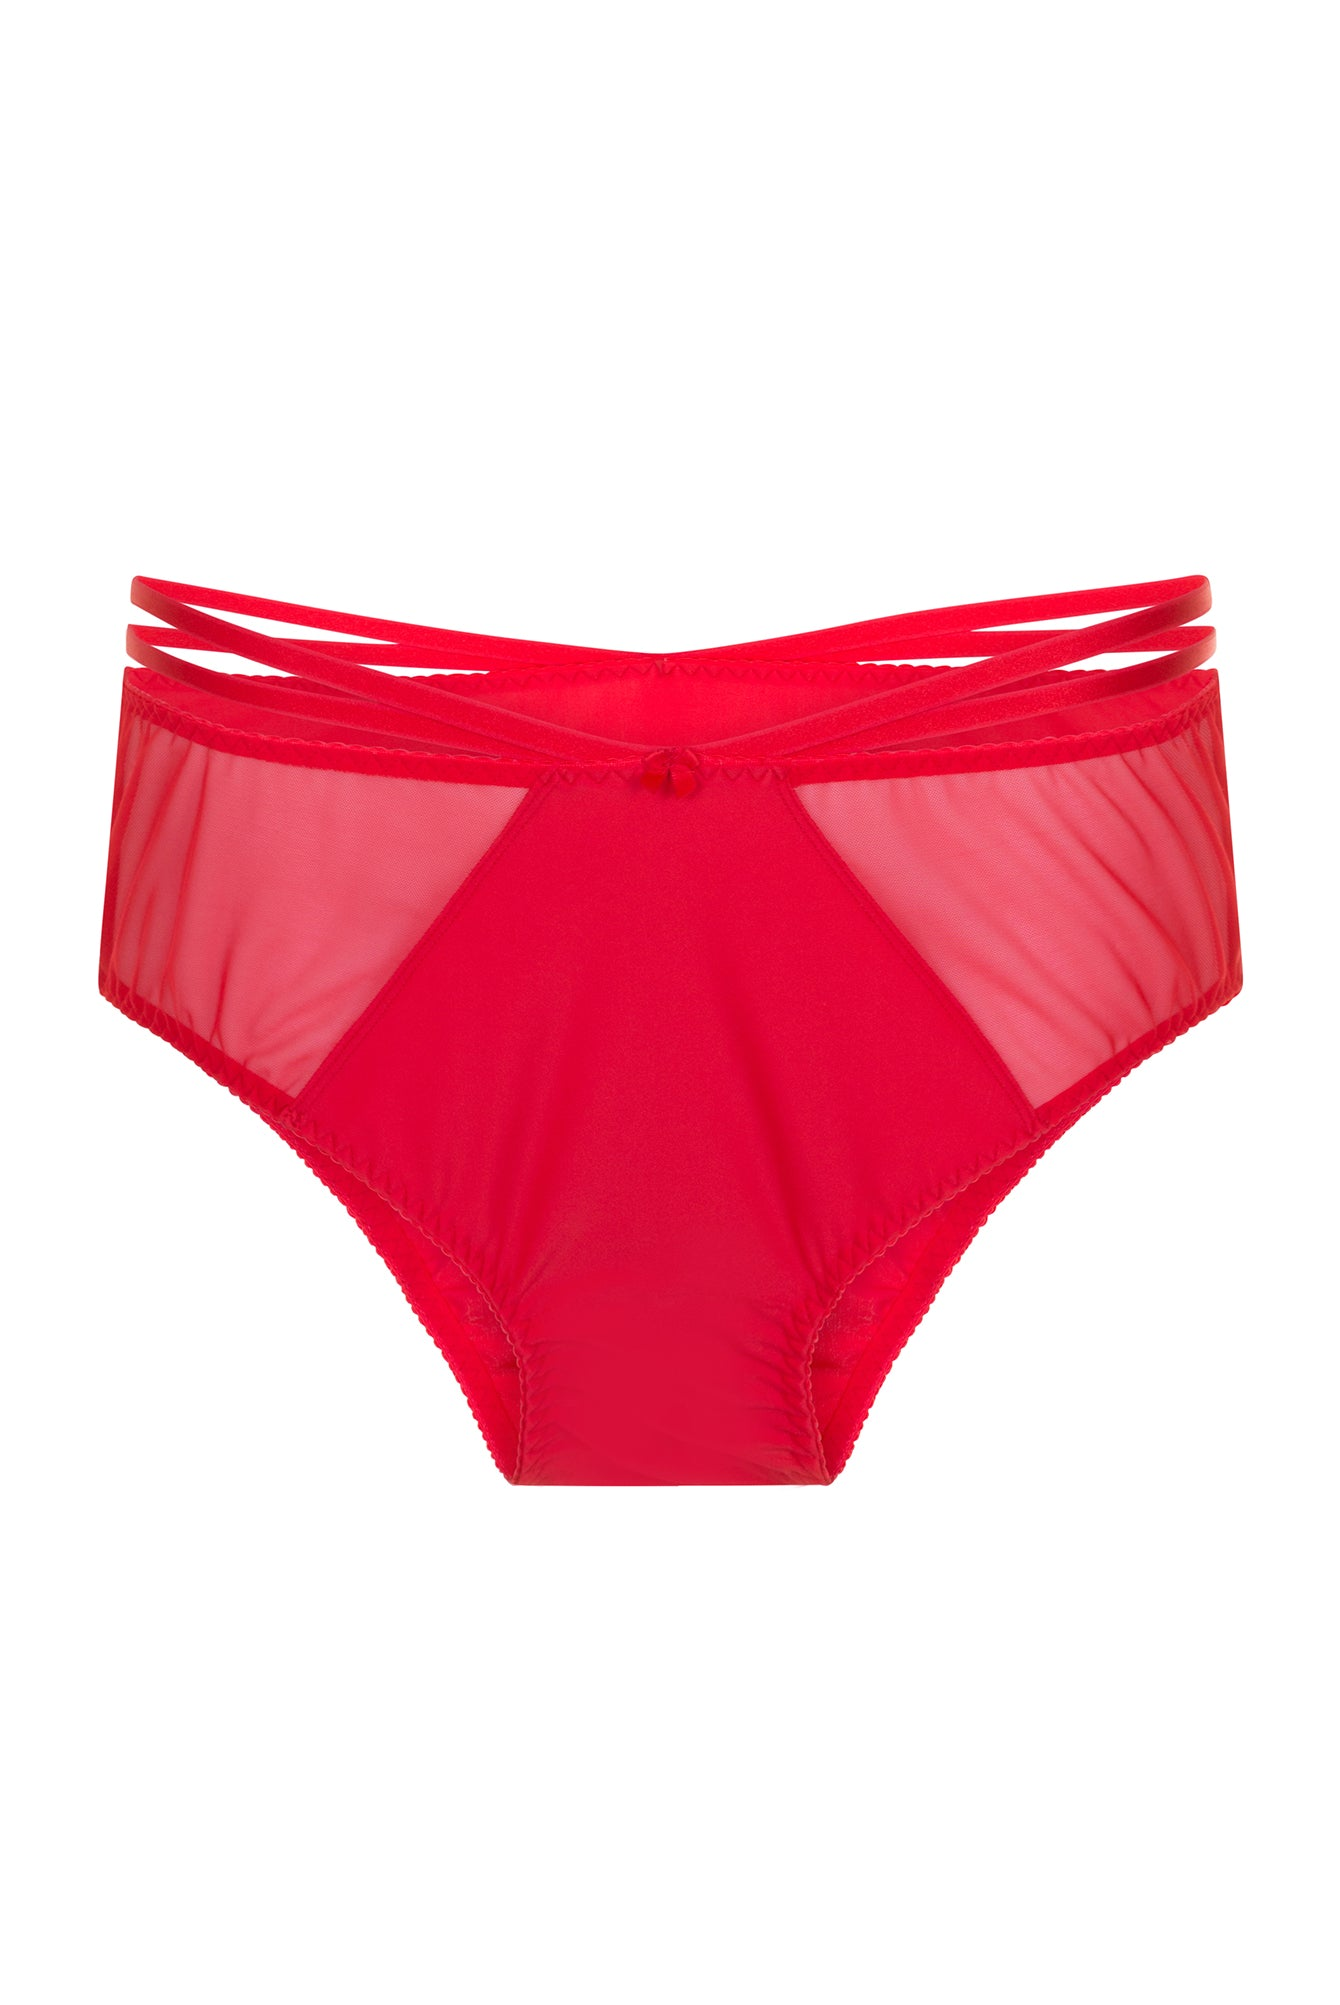 Red Strap Plus Size Briefs Panties Knickers 12 - 30